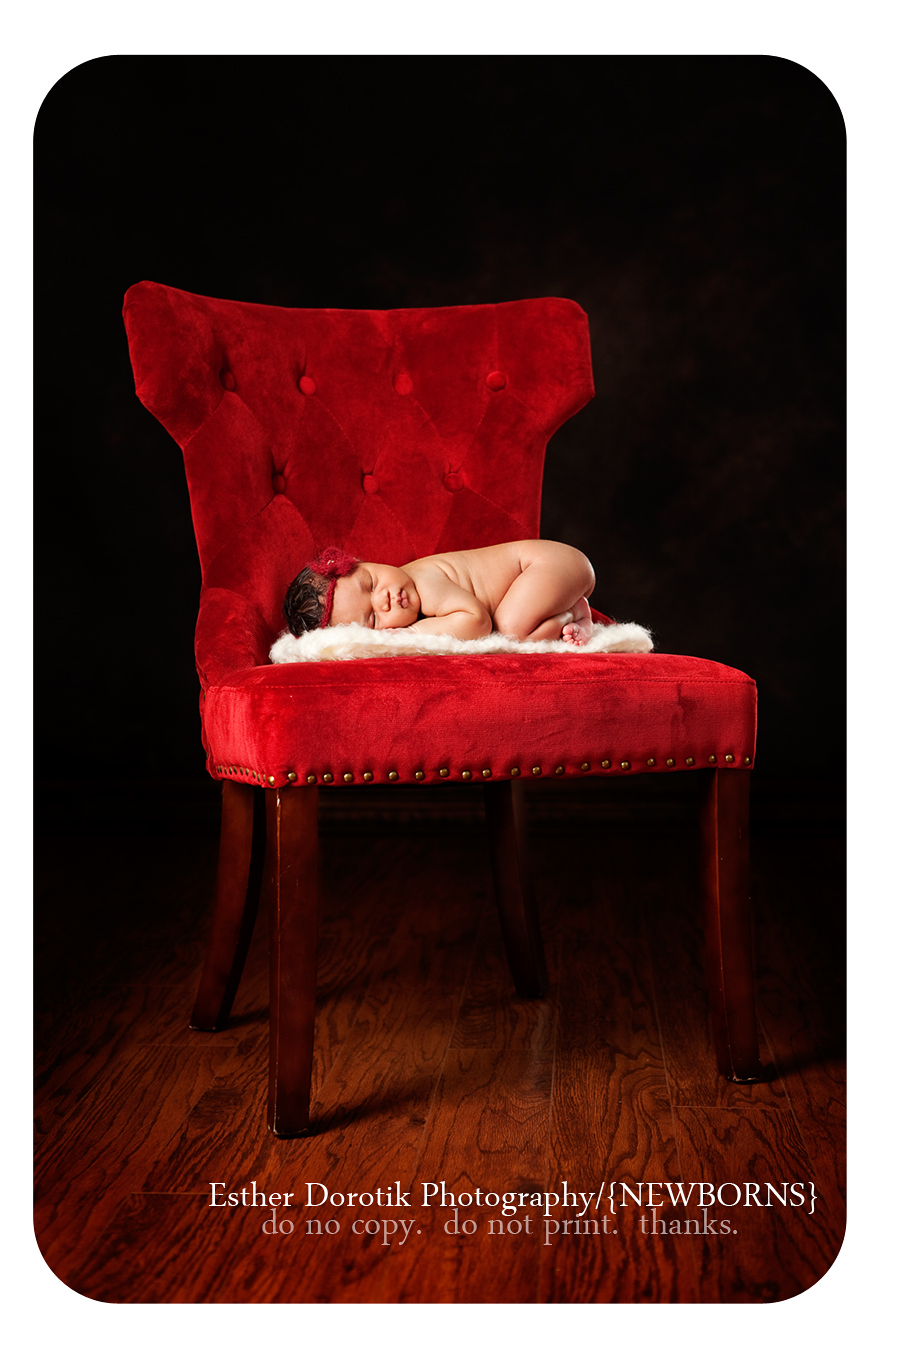 5-day-old-newborn-baby-laying-on-soft-red-chair